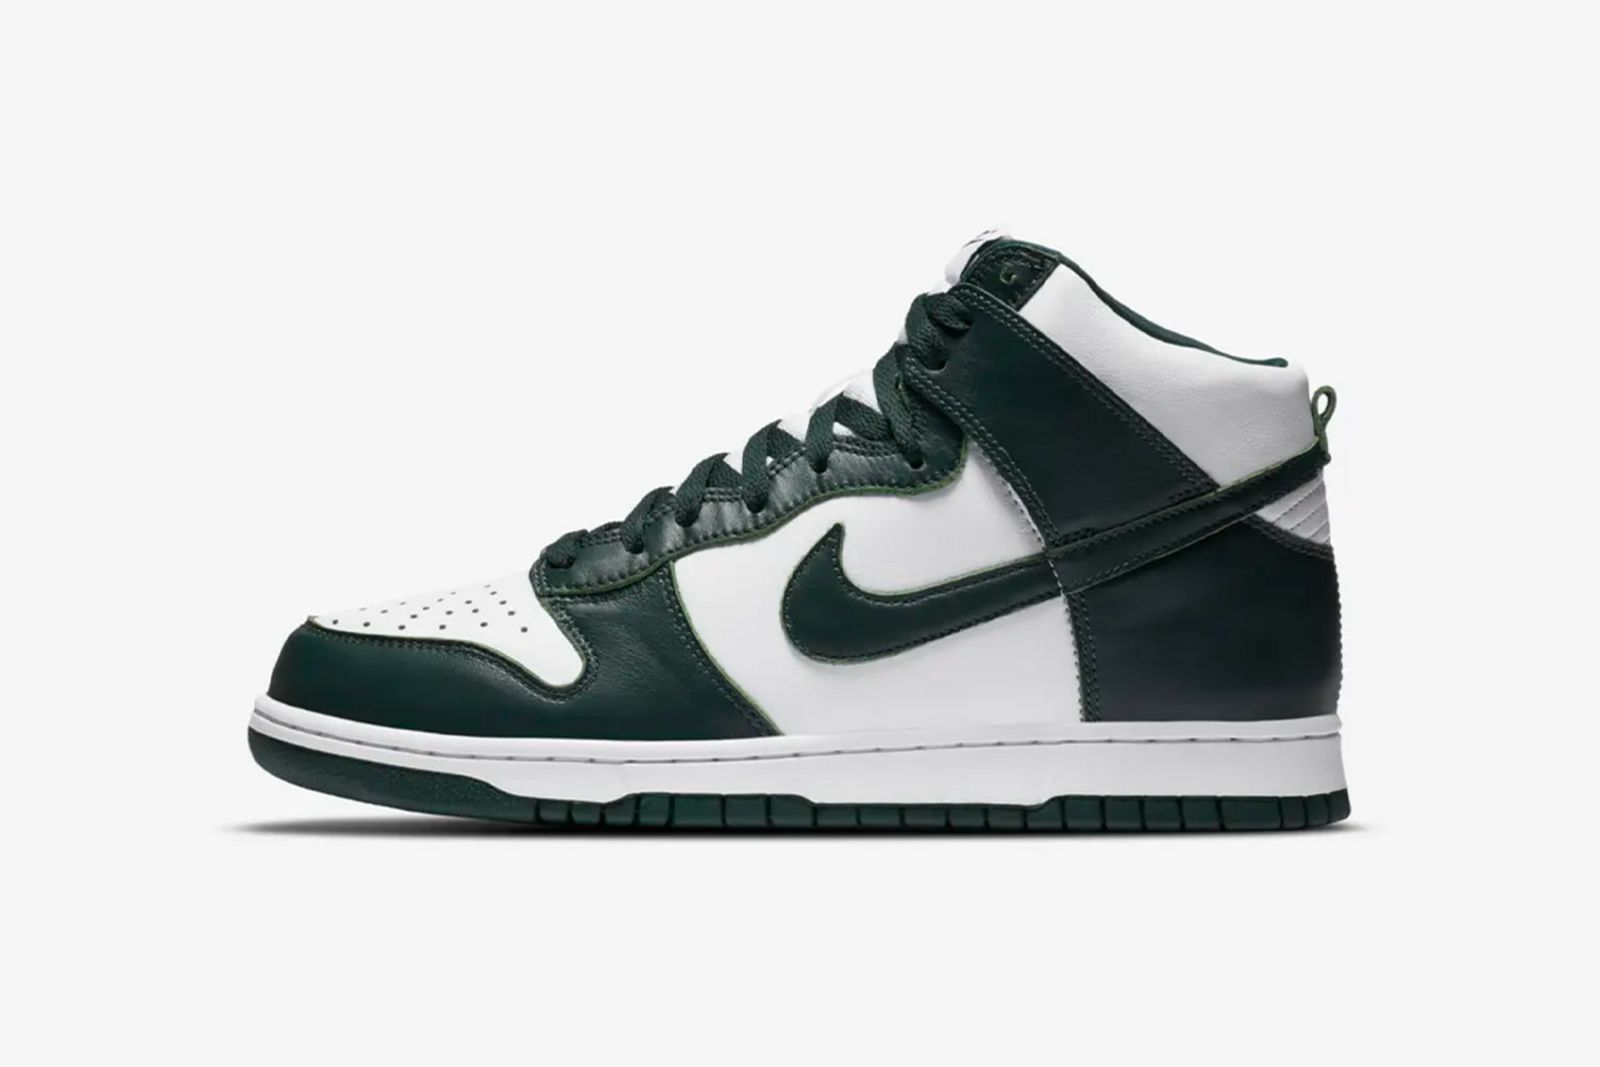 nike-dunk-high-spartan-green-release-date-price-02